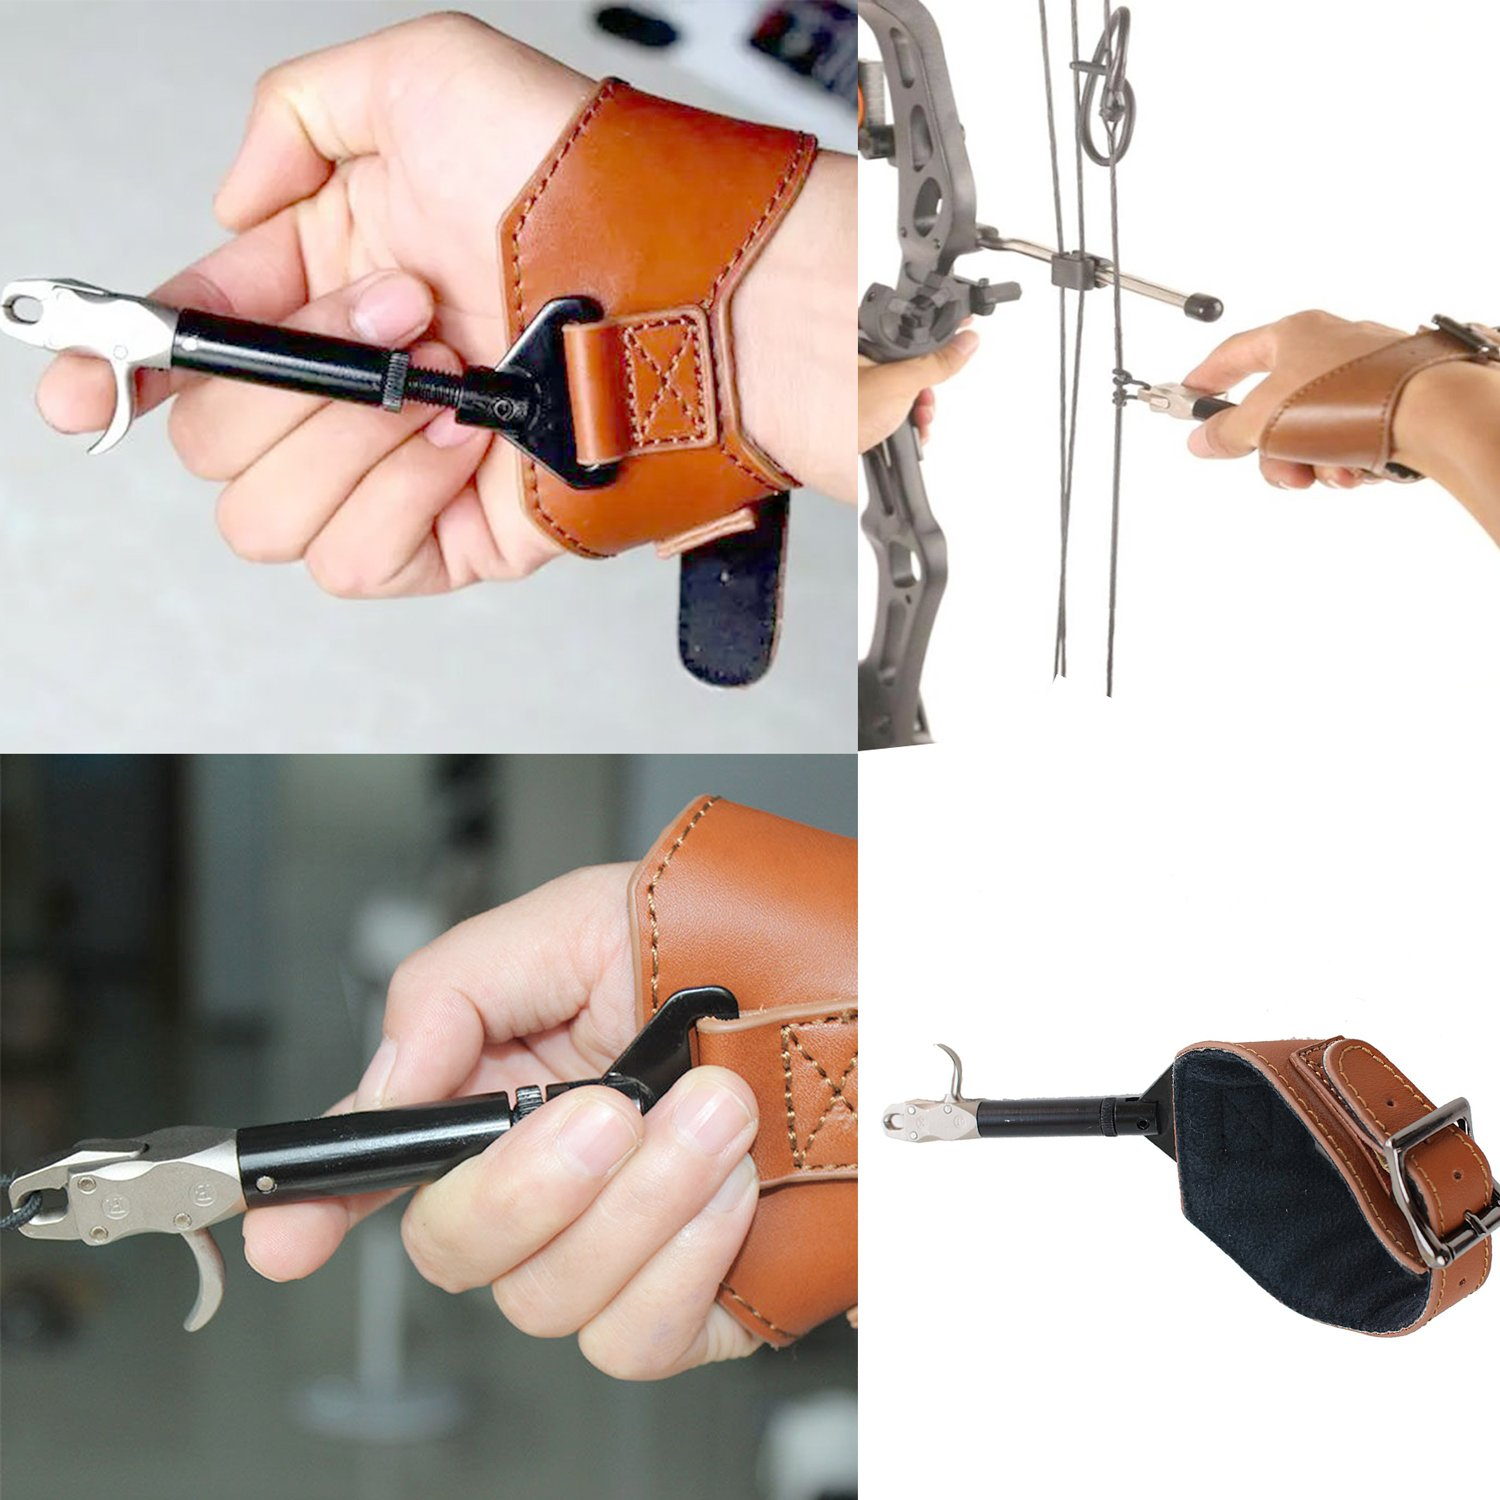 Funtress Buckle Foldback Adjustable Compound Bow Release Aid Trigger with Buckle Wrist Strap Caplier Shooting Trigger Accessories